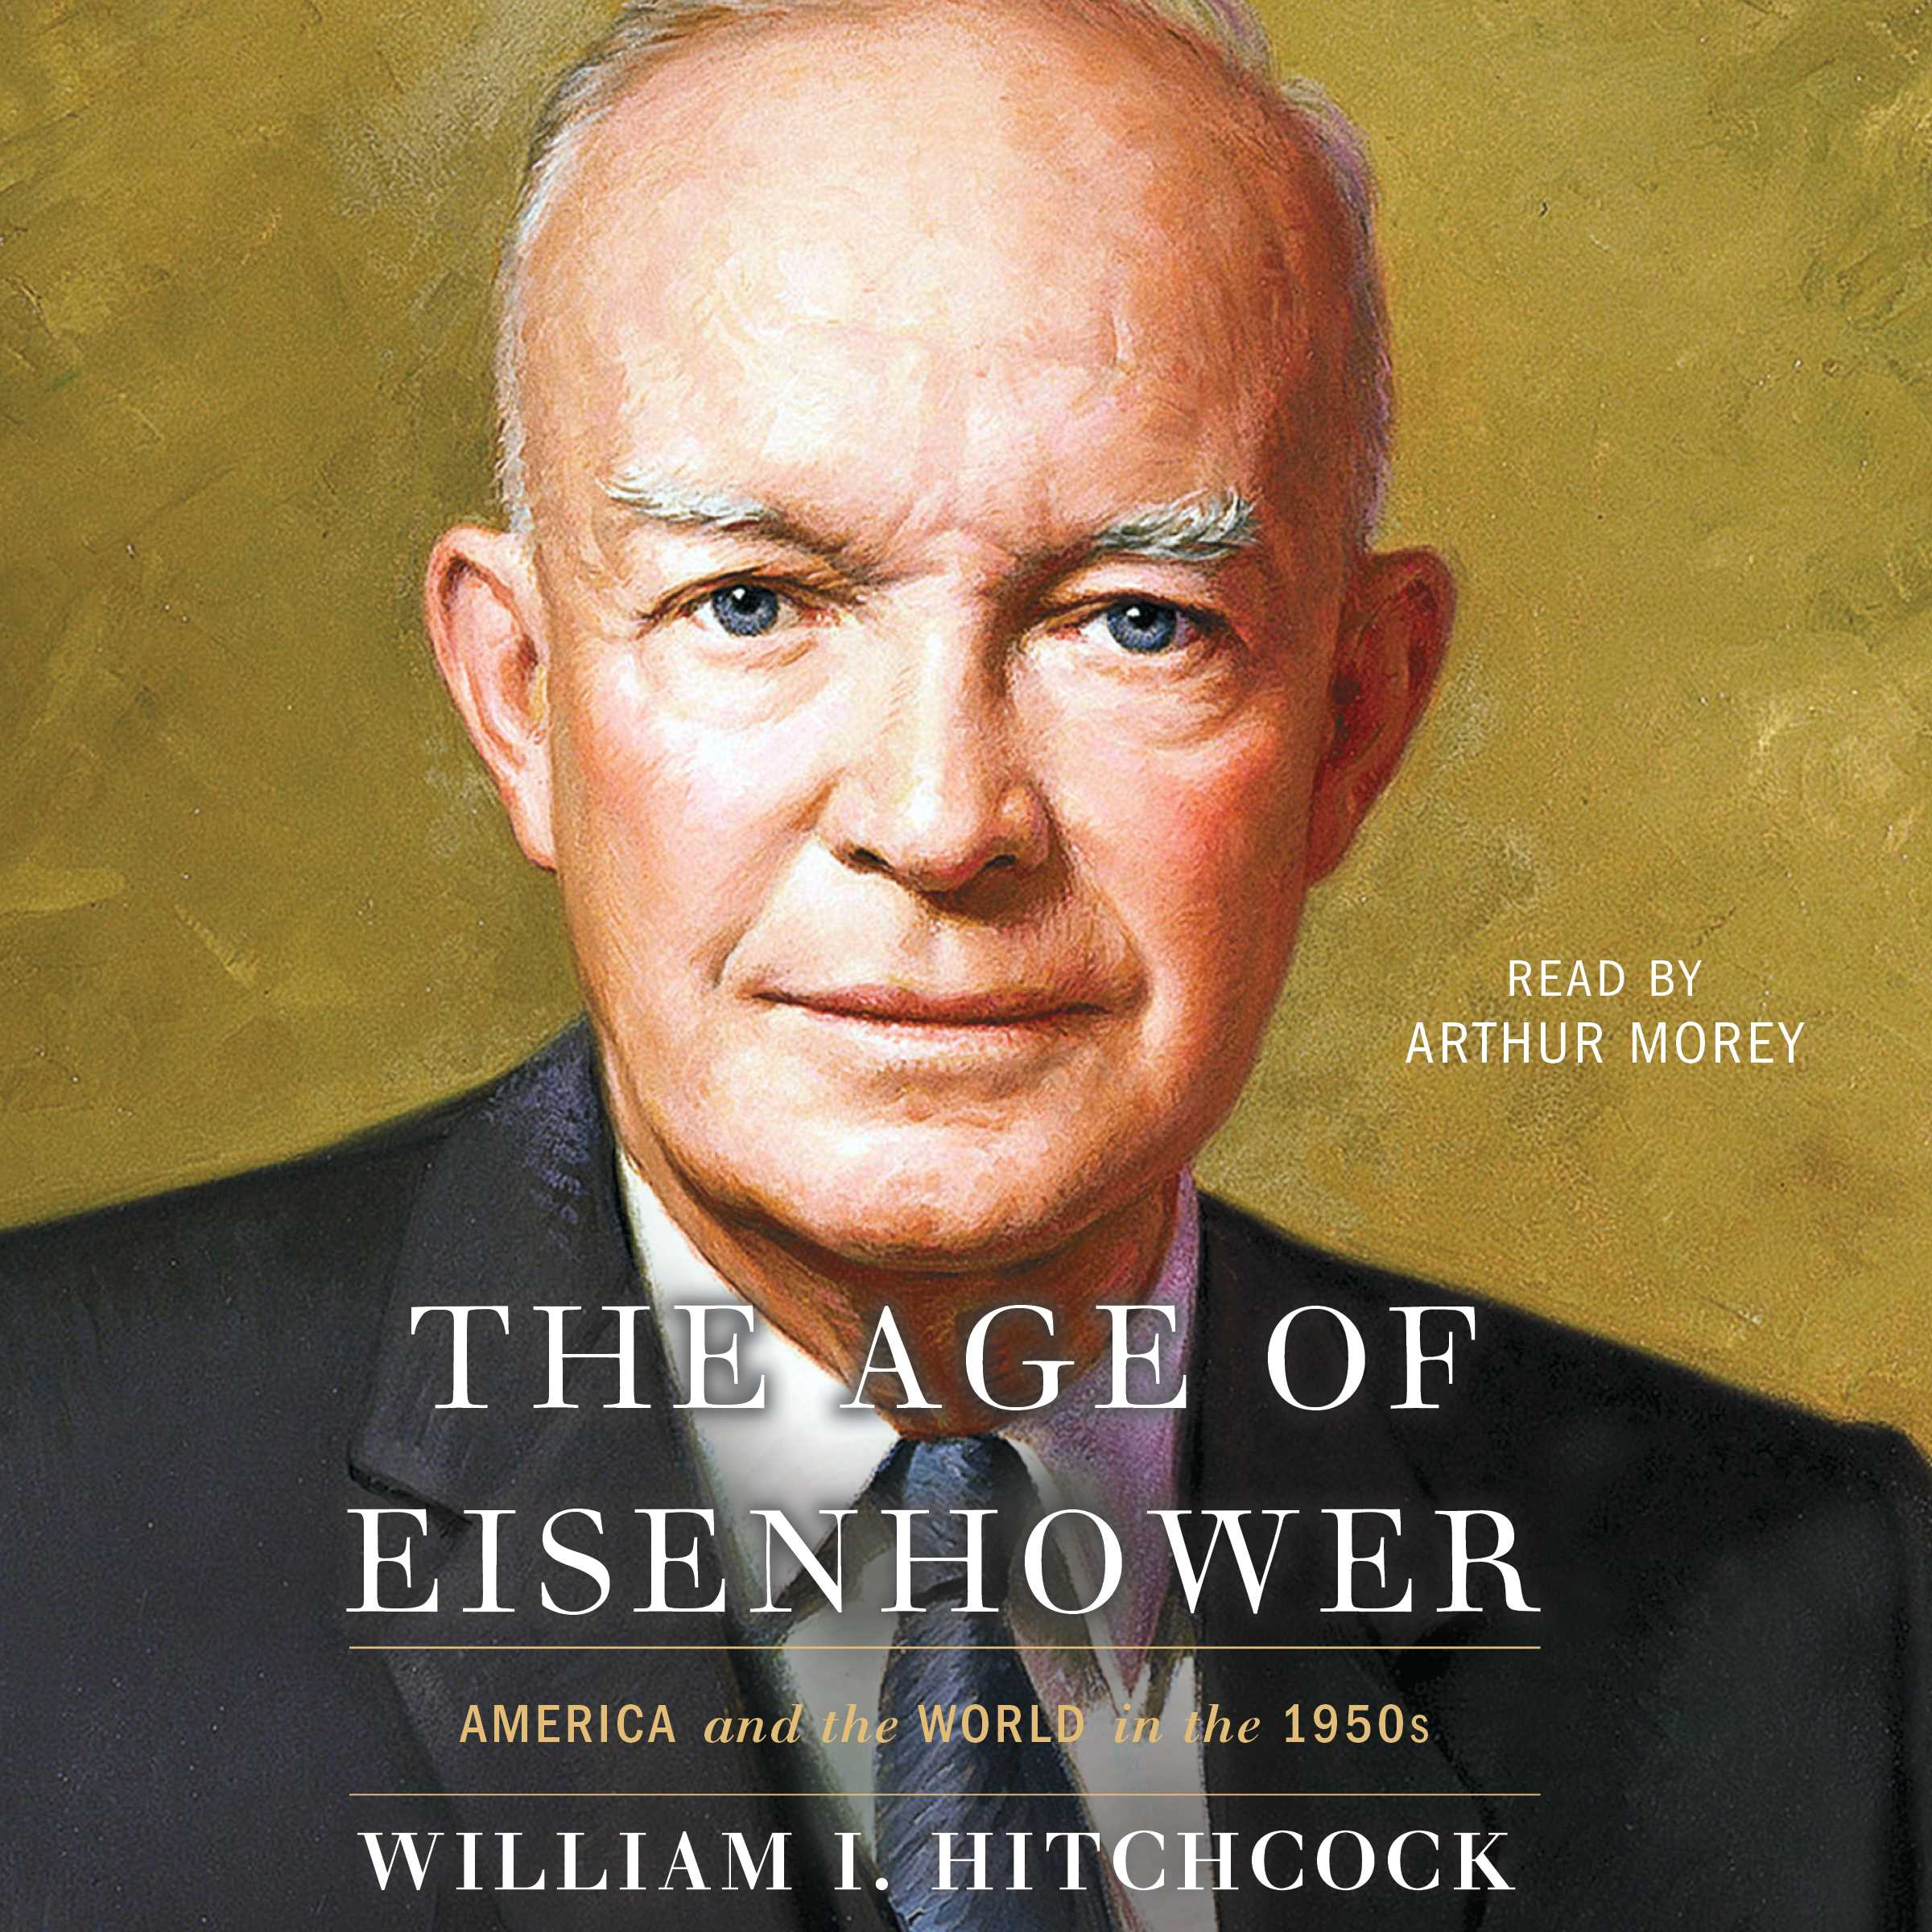 The age of eisenhower 9781508254478 hr